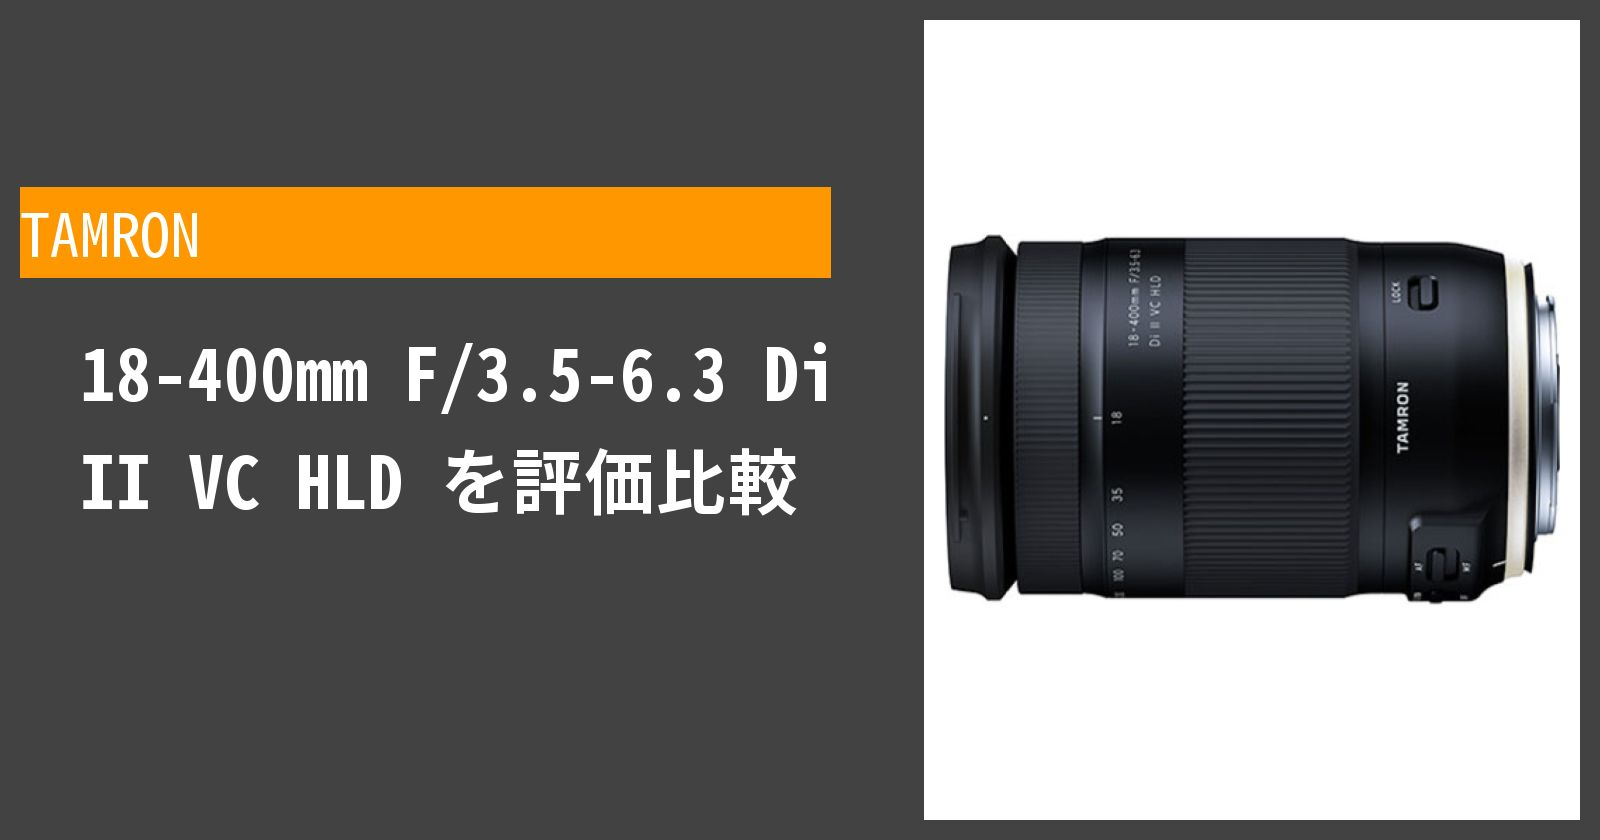 18-400mm F/3.5-6.3 Di II VC HLDを徹底評価